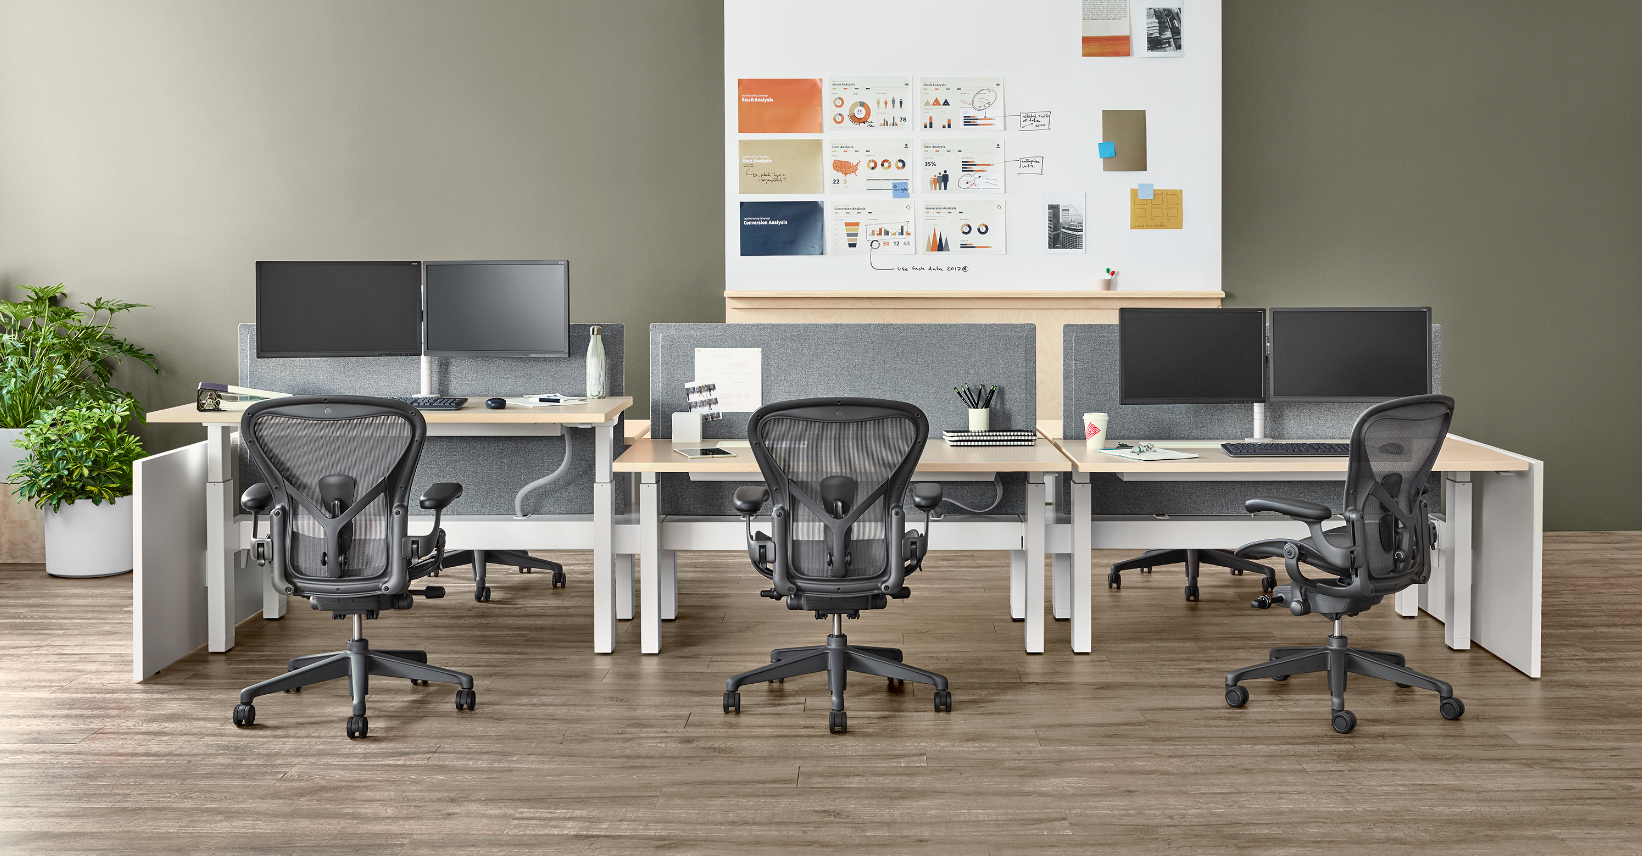 Herman Miller Aeron chairs empty in an office continental office